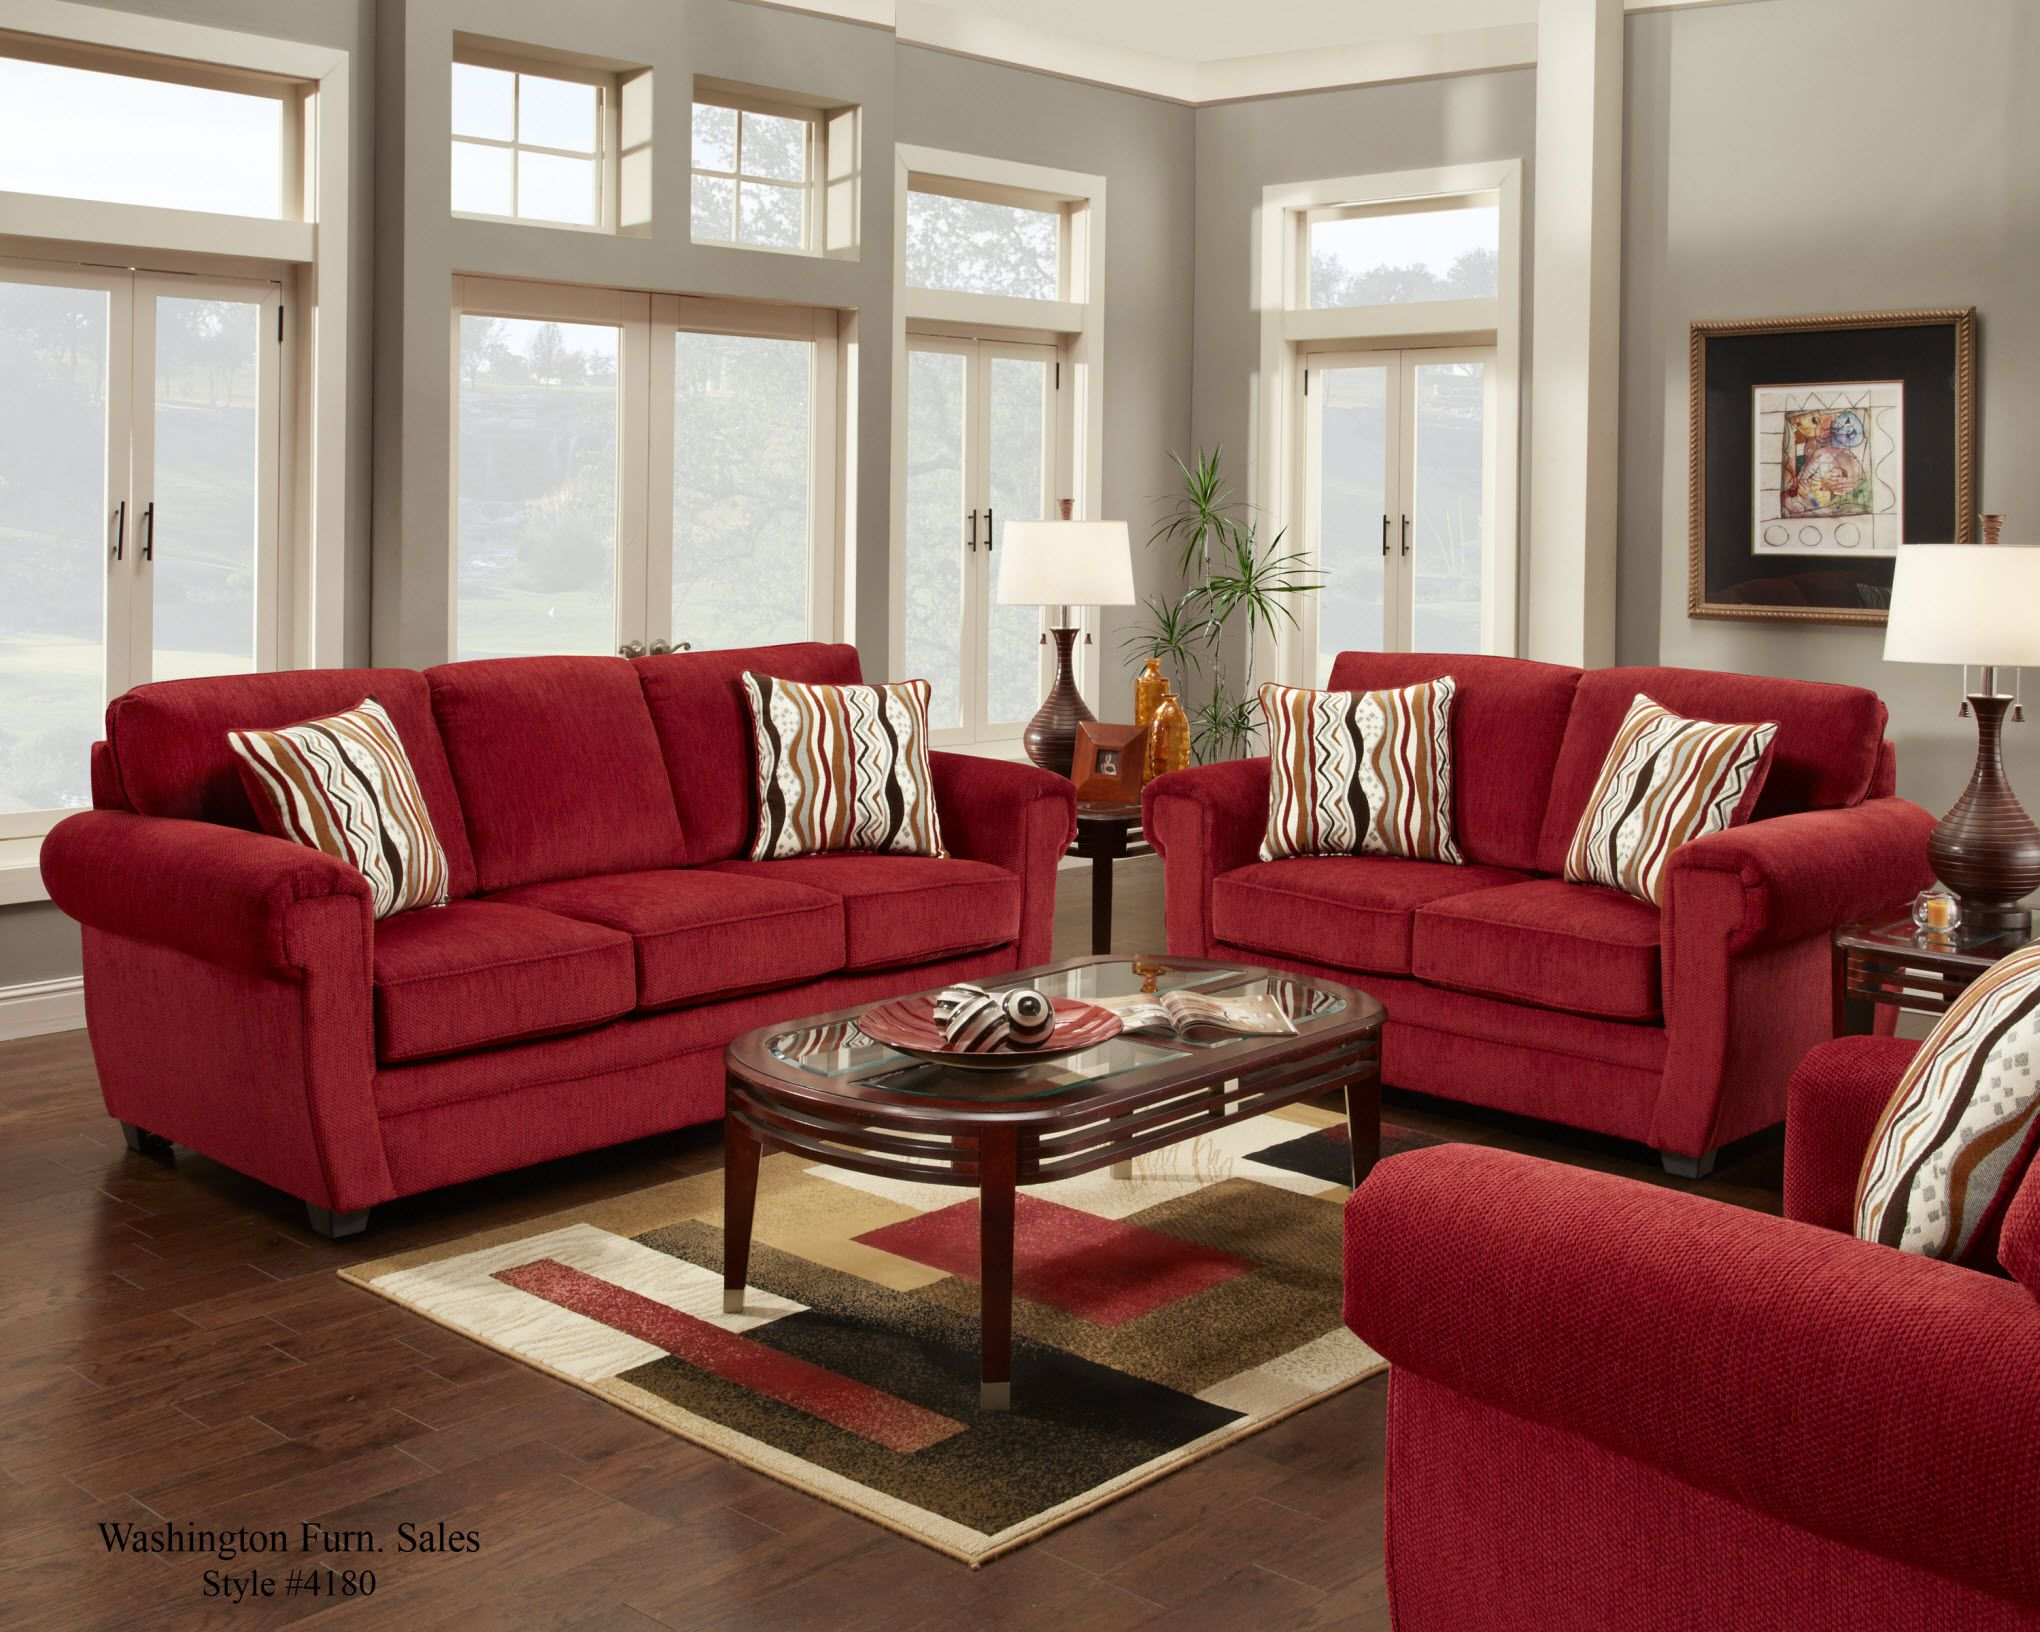 4180 washington samson red sofa and loveseat www Red living room ideas